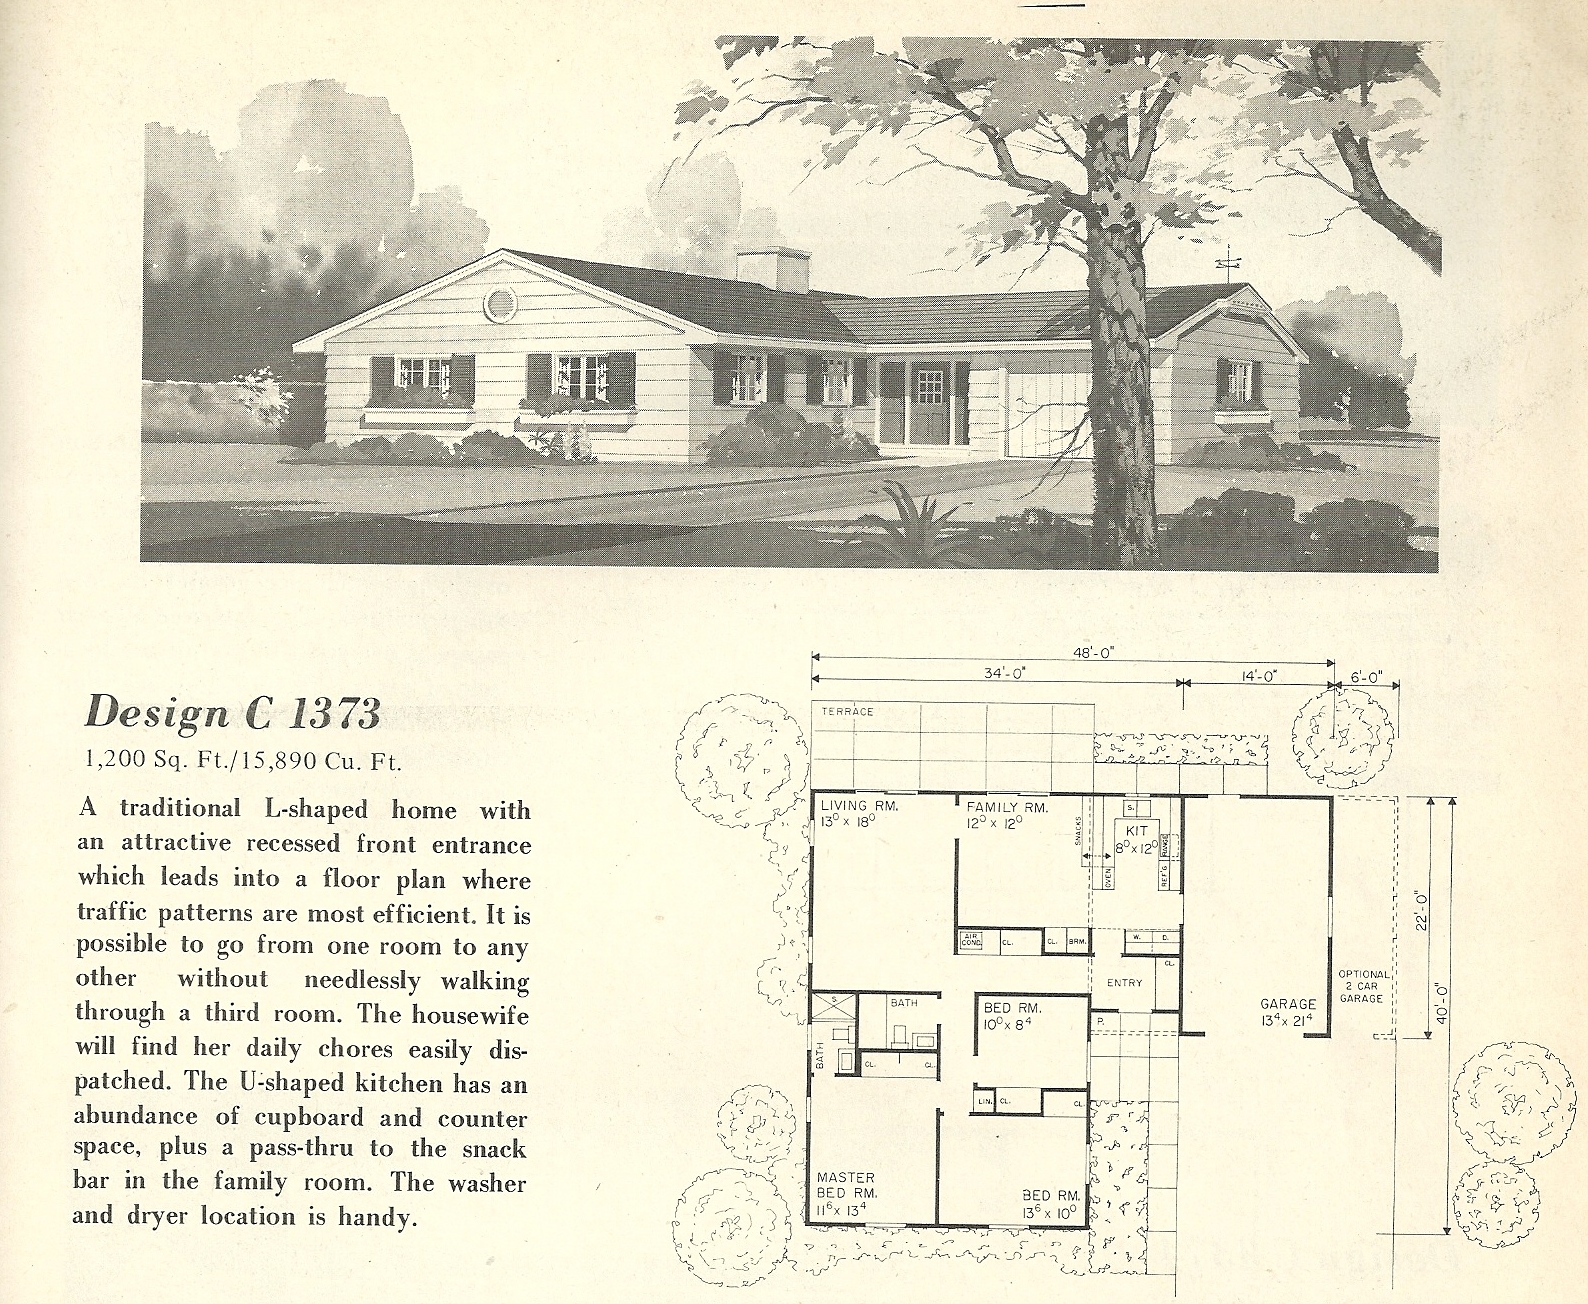 Vintage house plans 1373 antique alter ego for New old home plans